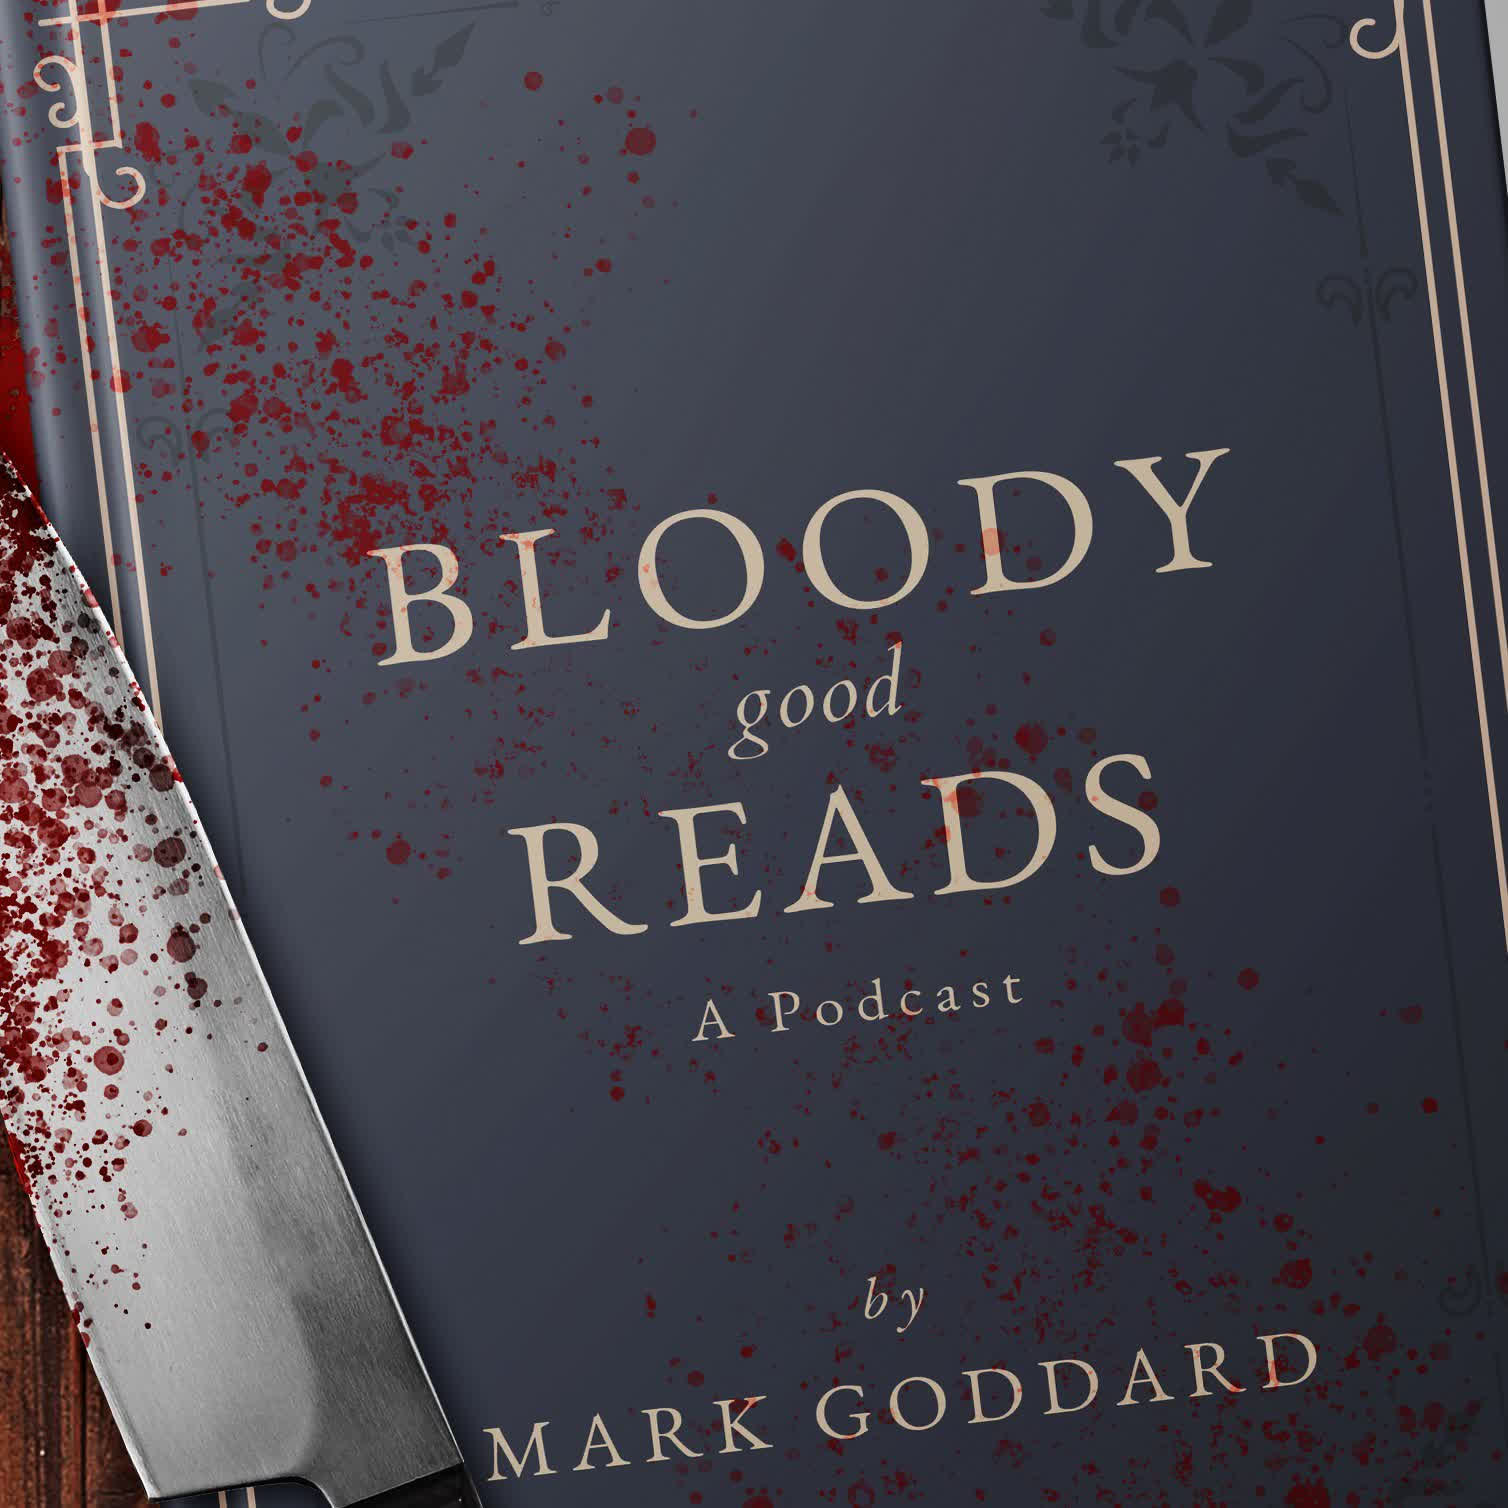 Bloody Good Reads Chapter 11 - James Brogden